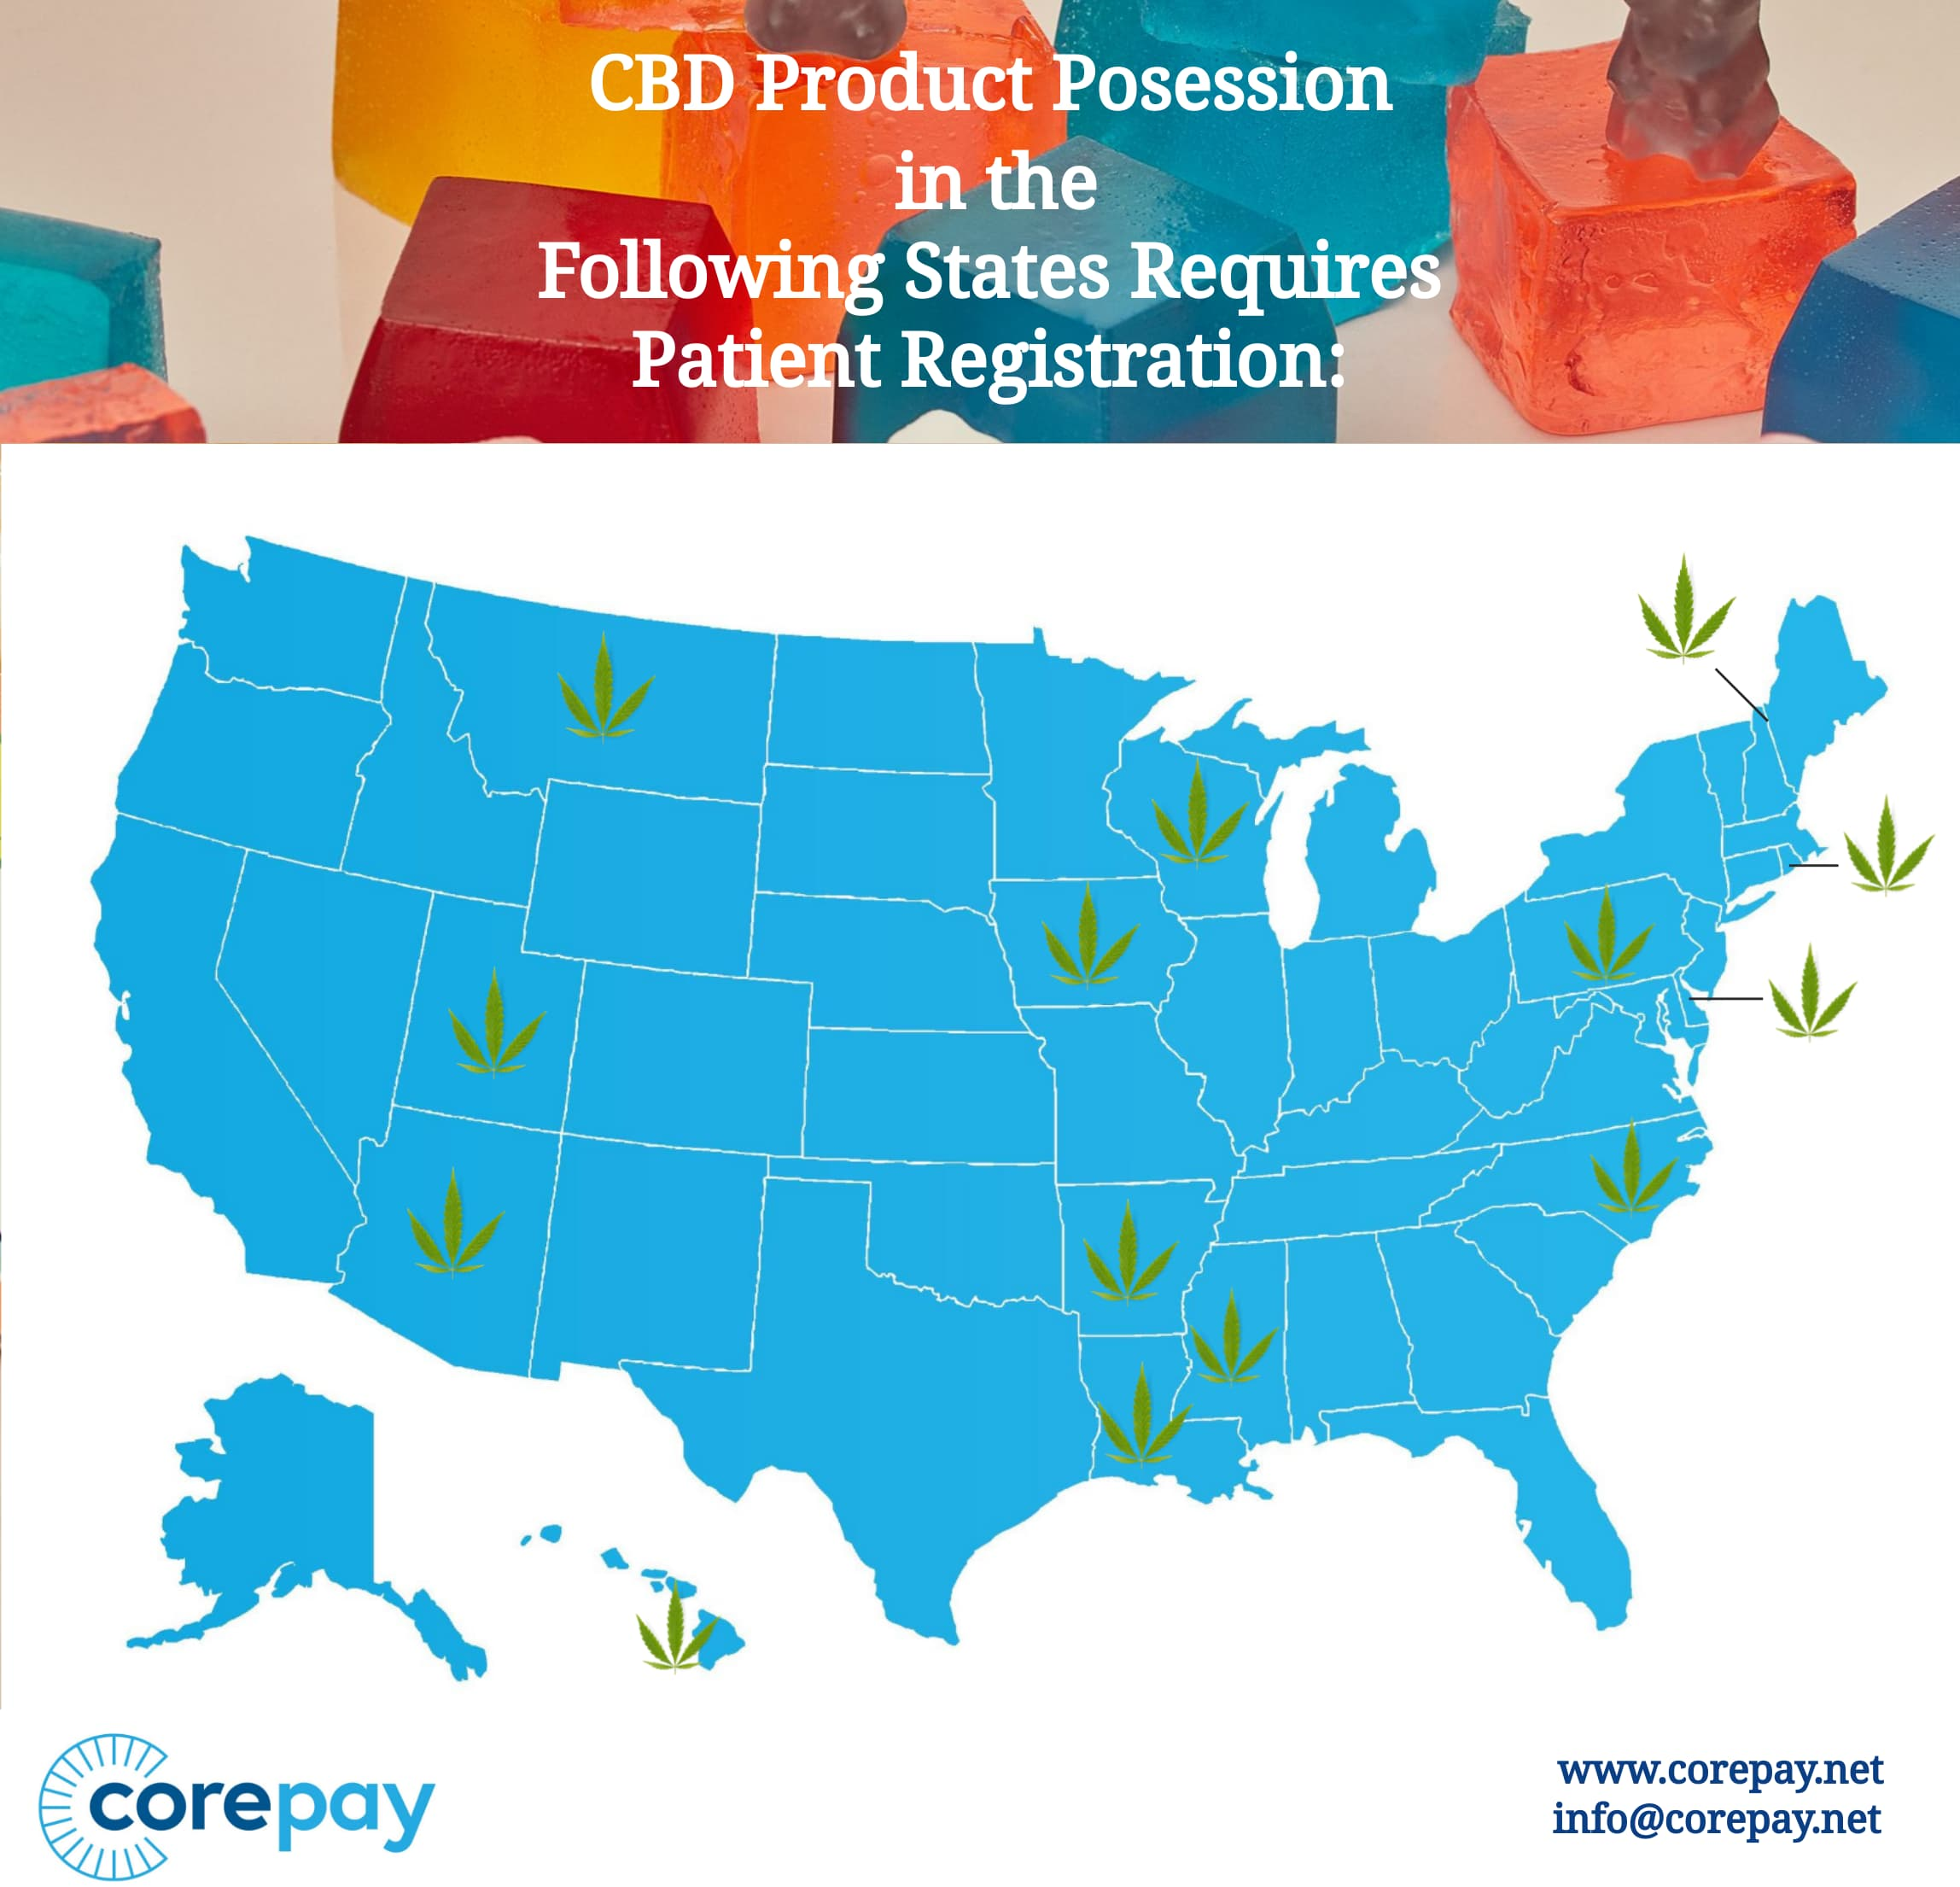 CBD requires patent registration in these states